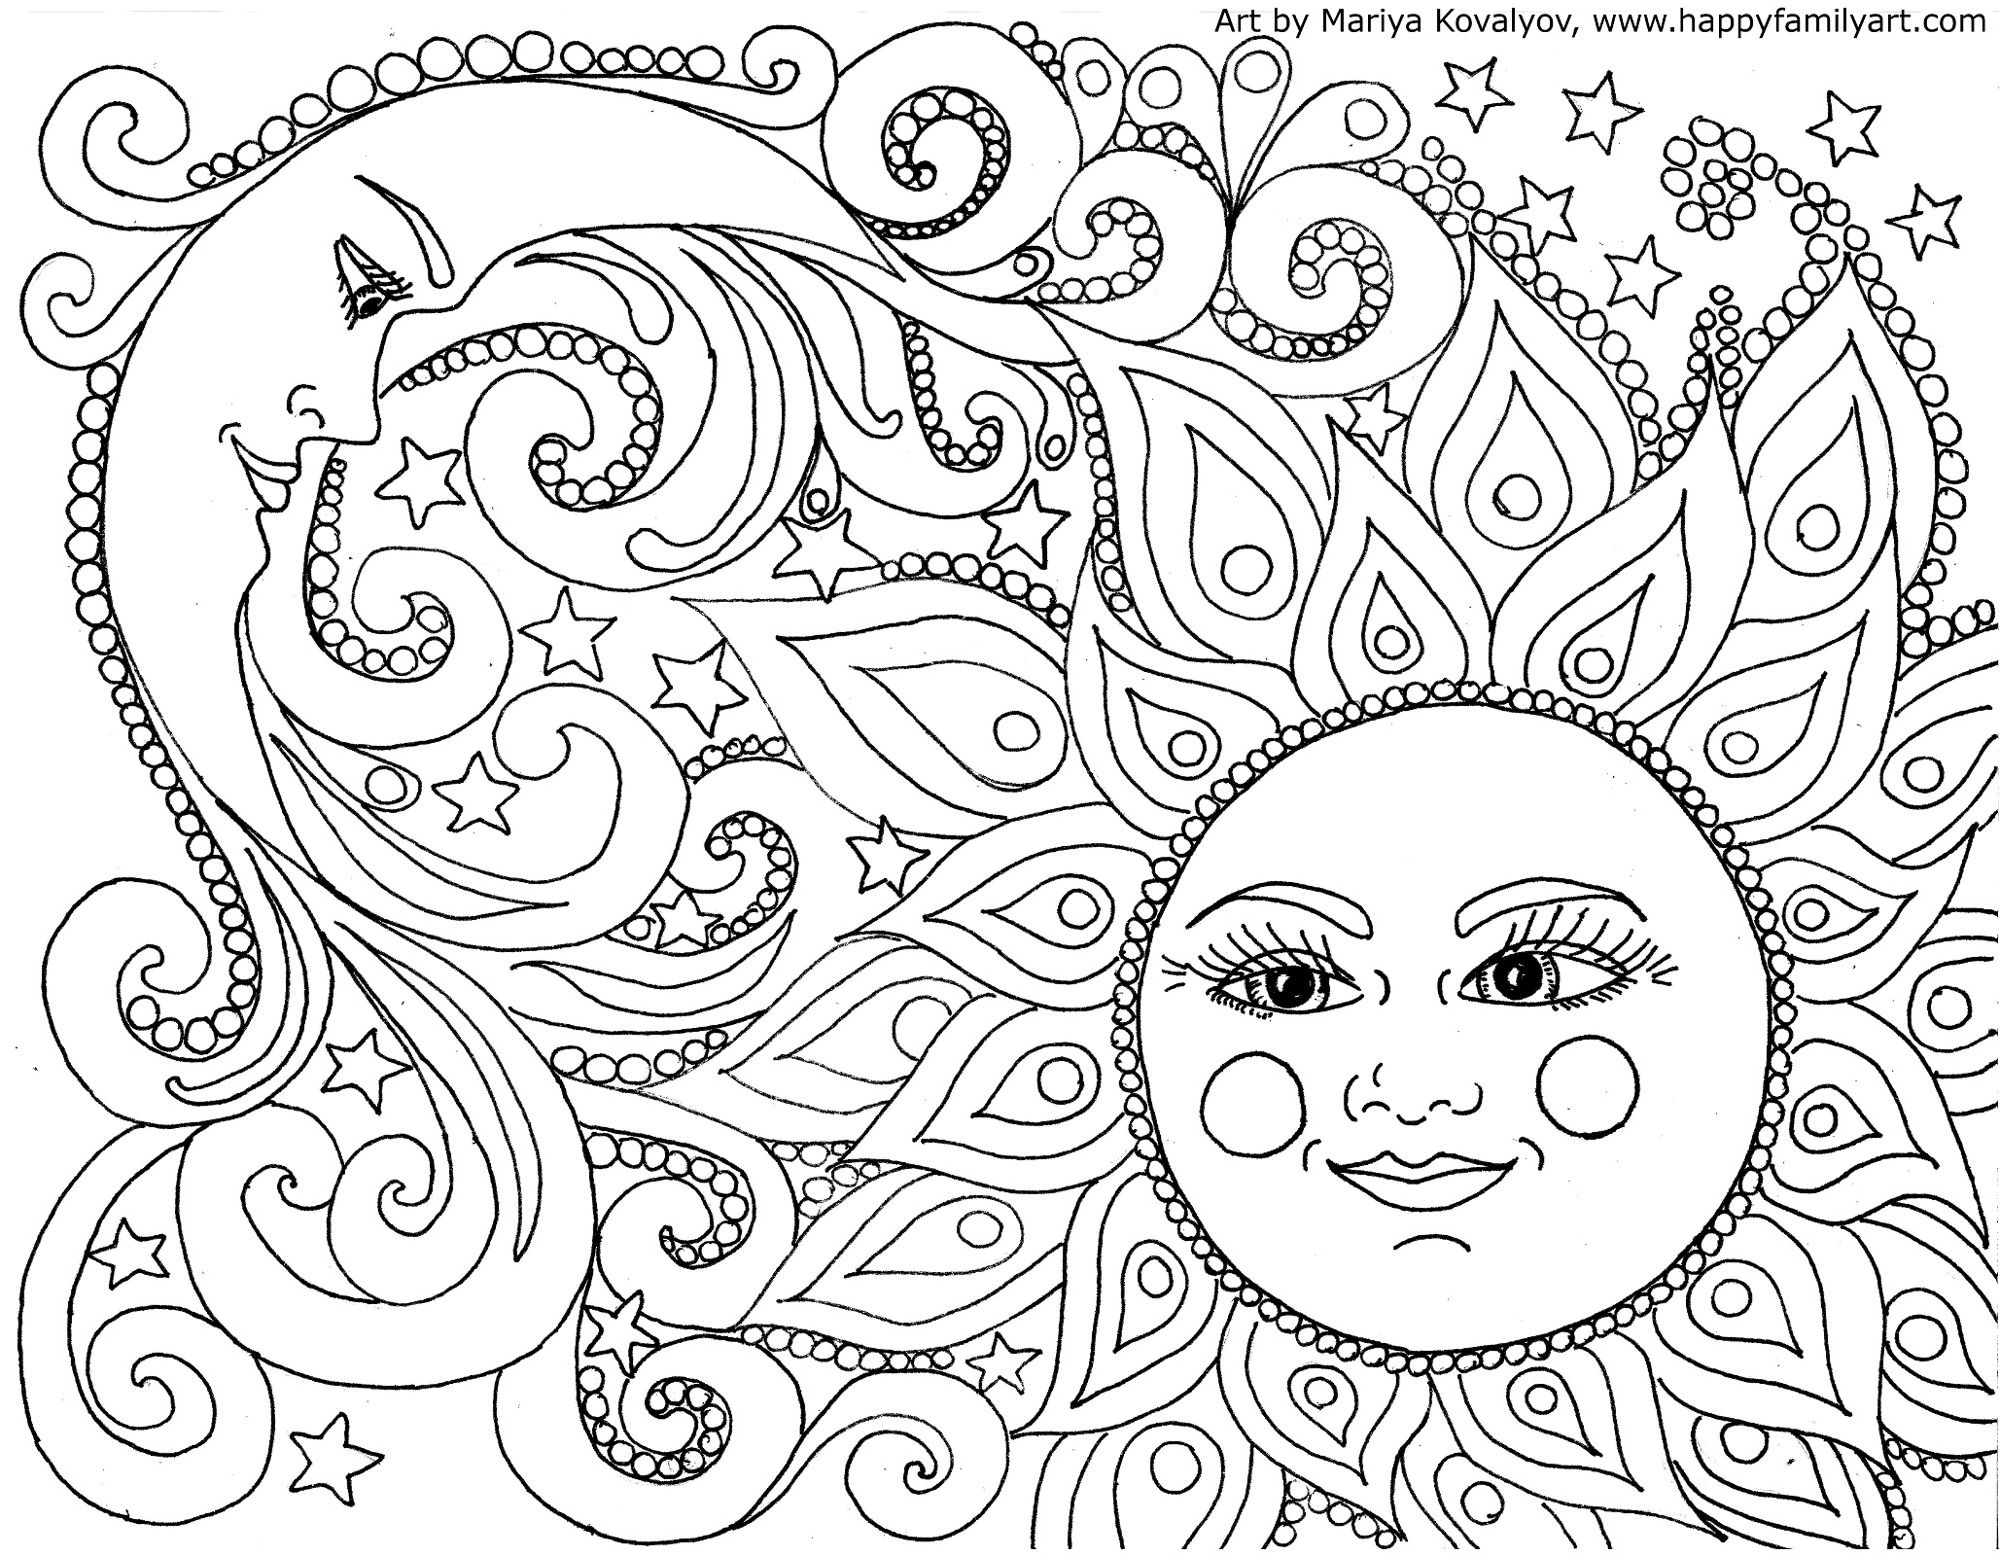 Free online coloring pages for adults - I Made Many Great Fun And Original Coloring Pages Color Your Heart Out Printable Adult Coloring Pagescoloring Booksfree